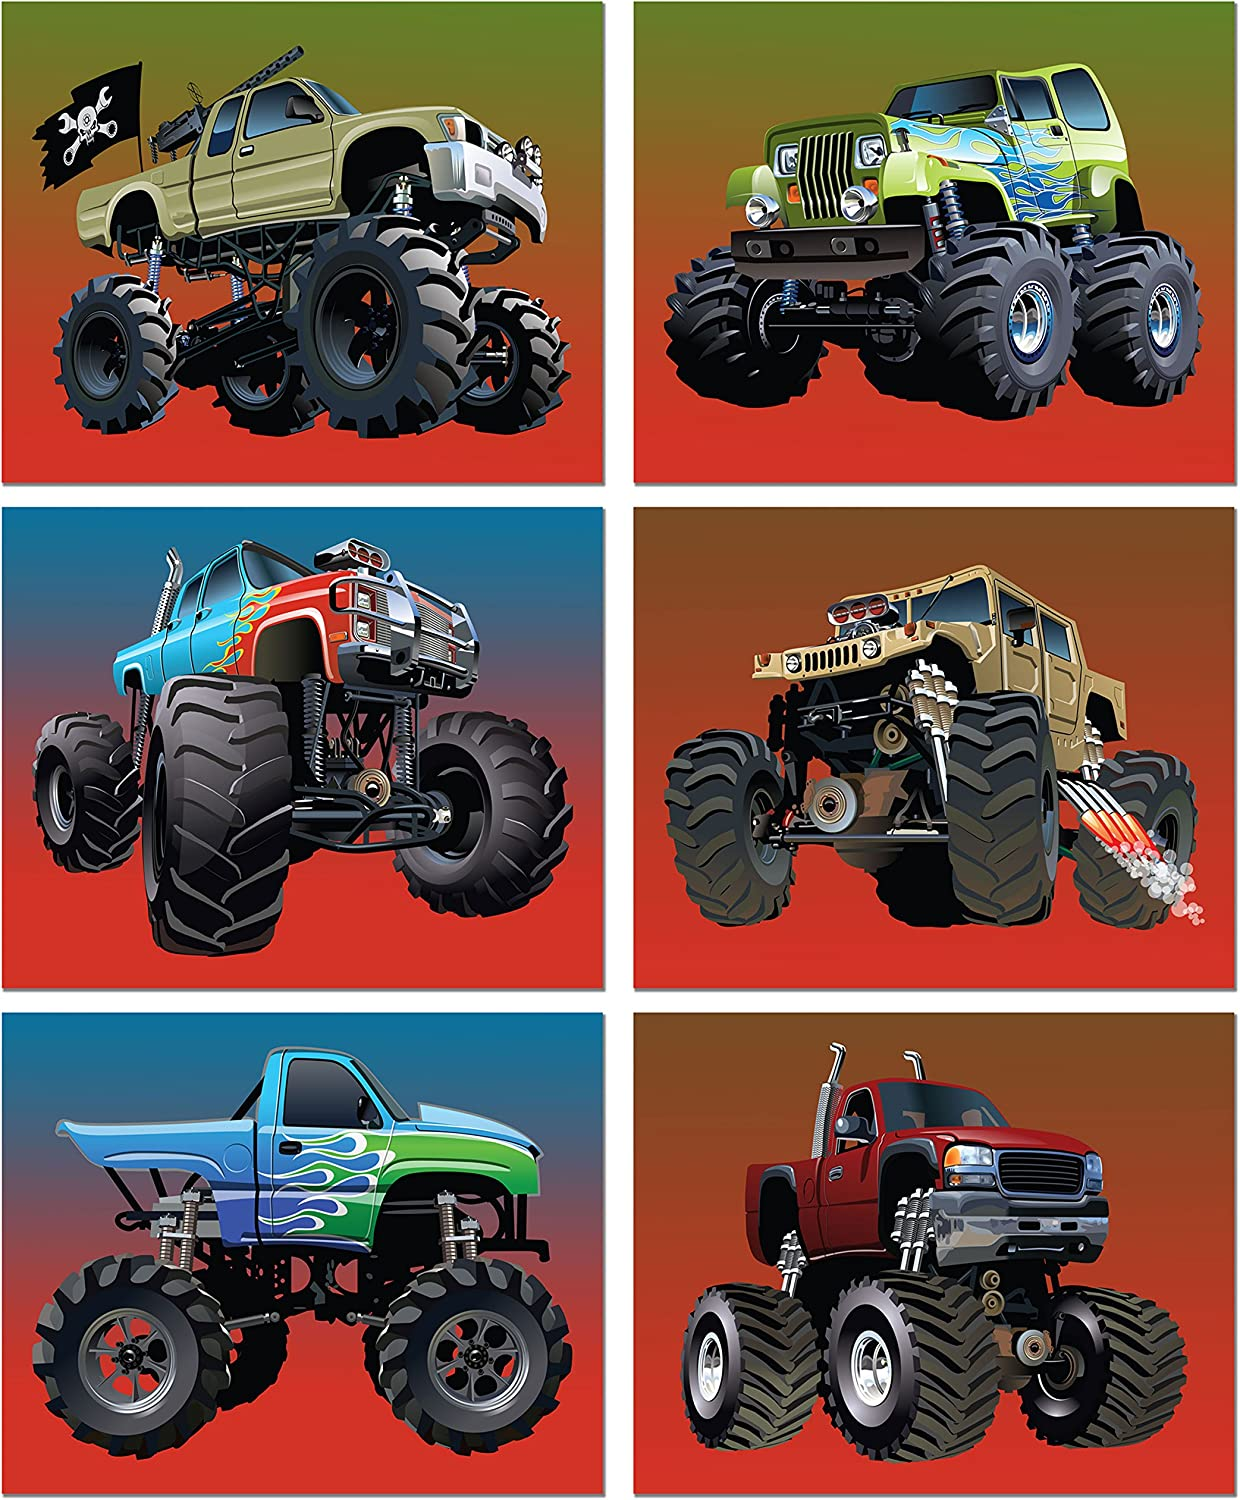 Monster Truck Poster Prints - Set of 6 (8 inches x 10 inches) Photos - Kids Wall Art Decor